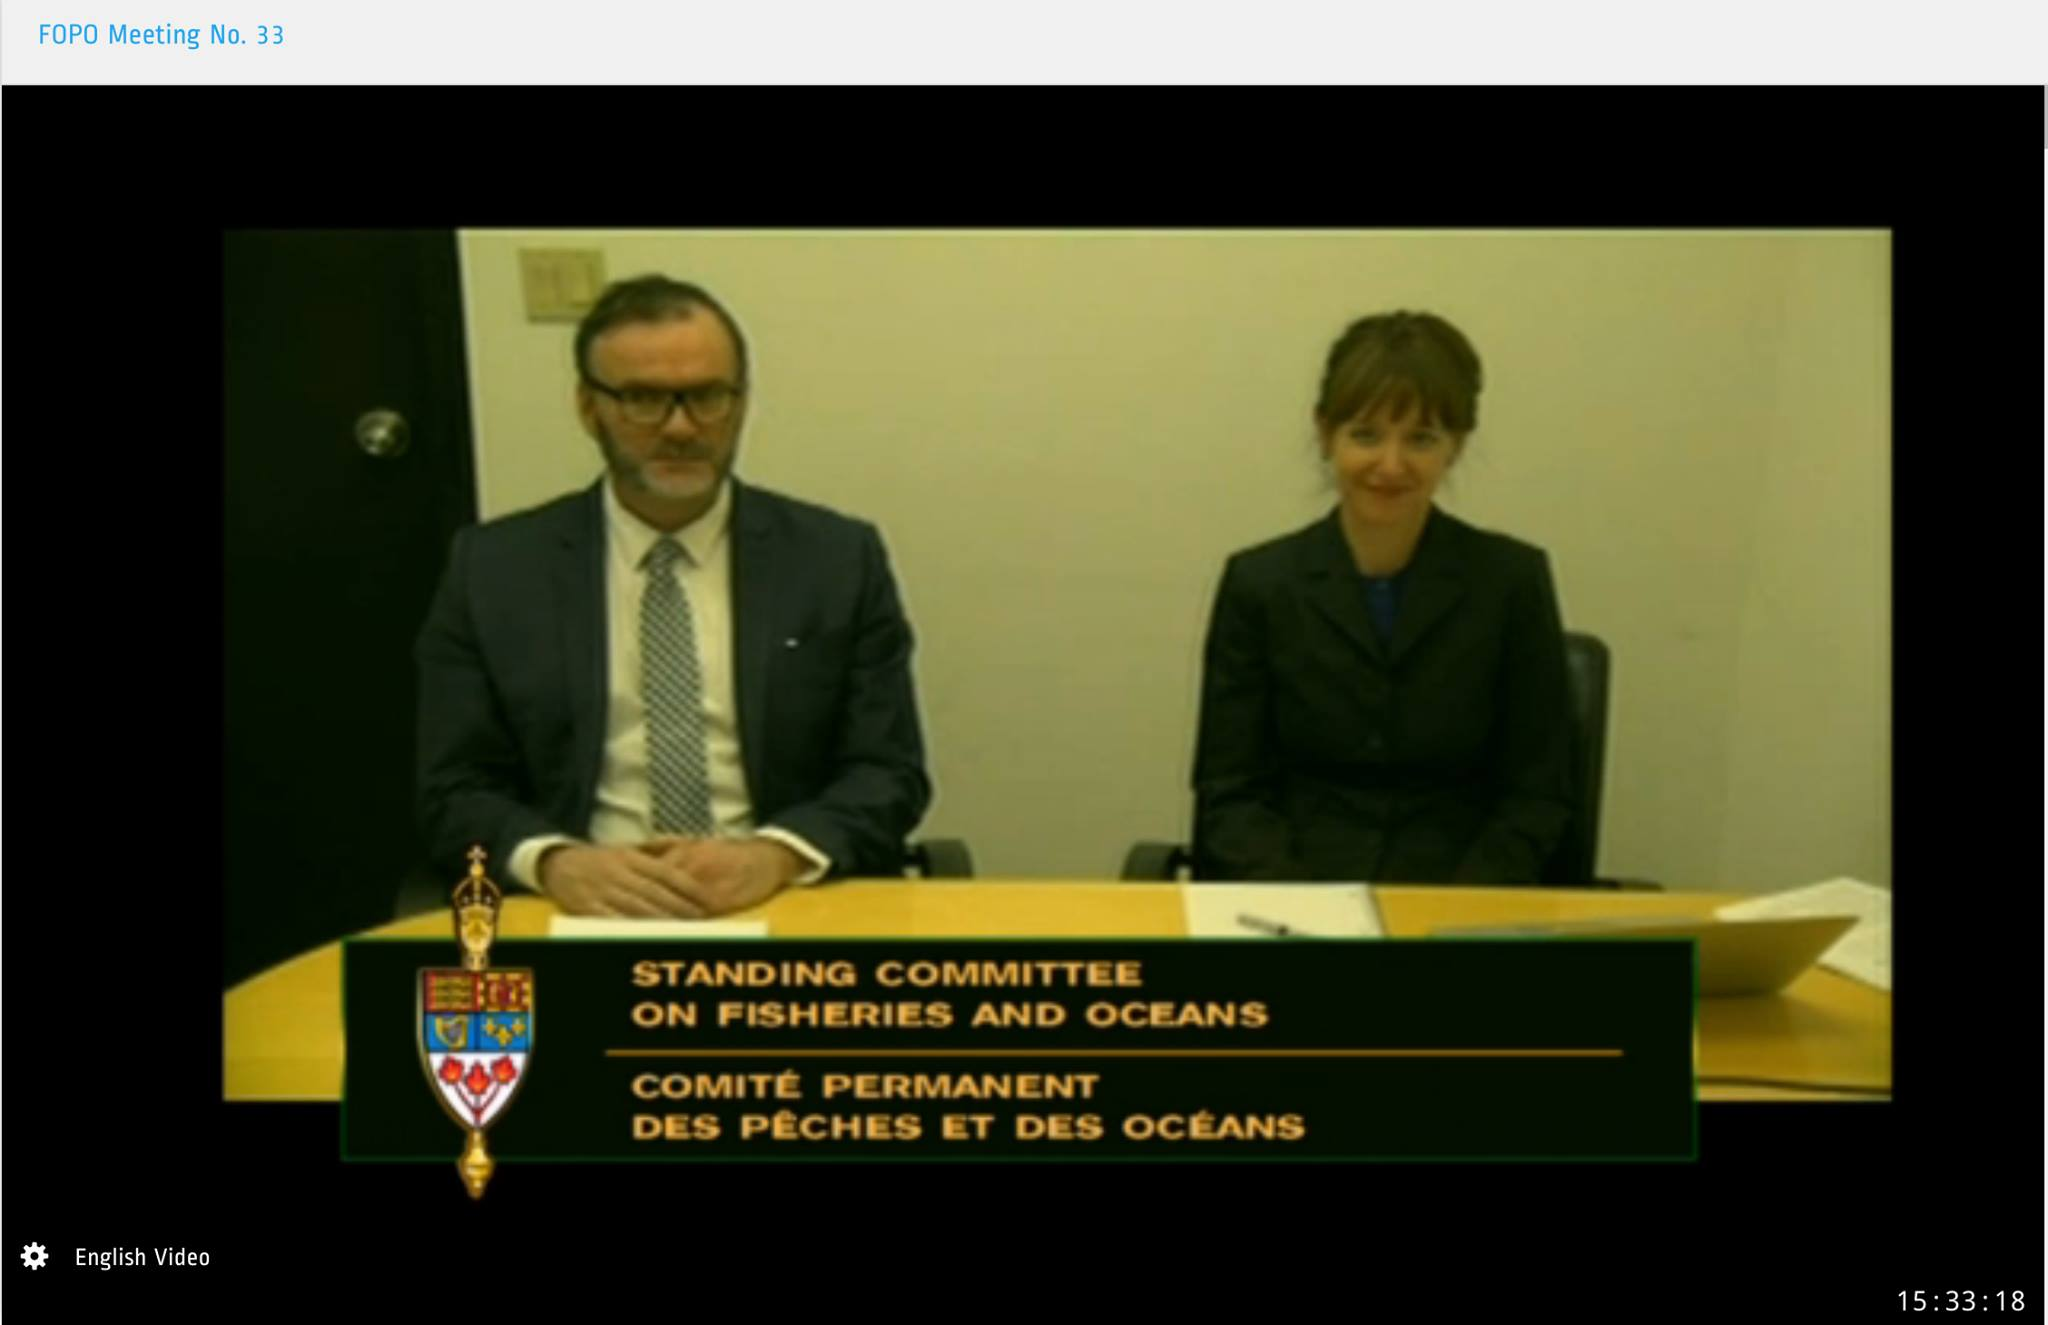 Lake Ontario Waterkeeper / Swim Drink Fish Canada's founders, Mark Mattson and Krystyn Tully presenting recommendations to the Standing Committee. (Screen grab from ParlVu webcast)